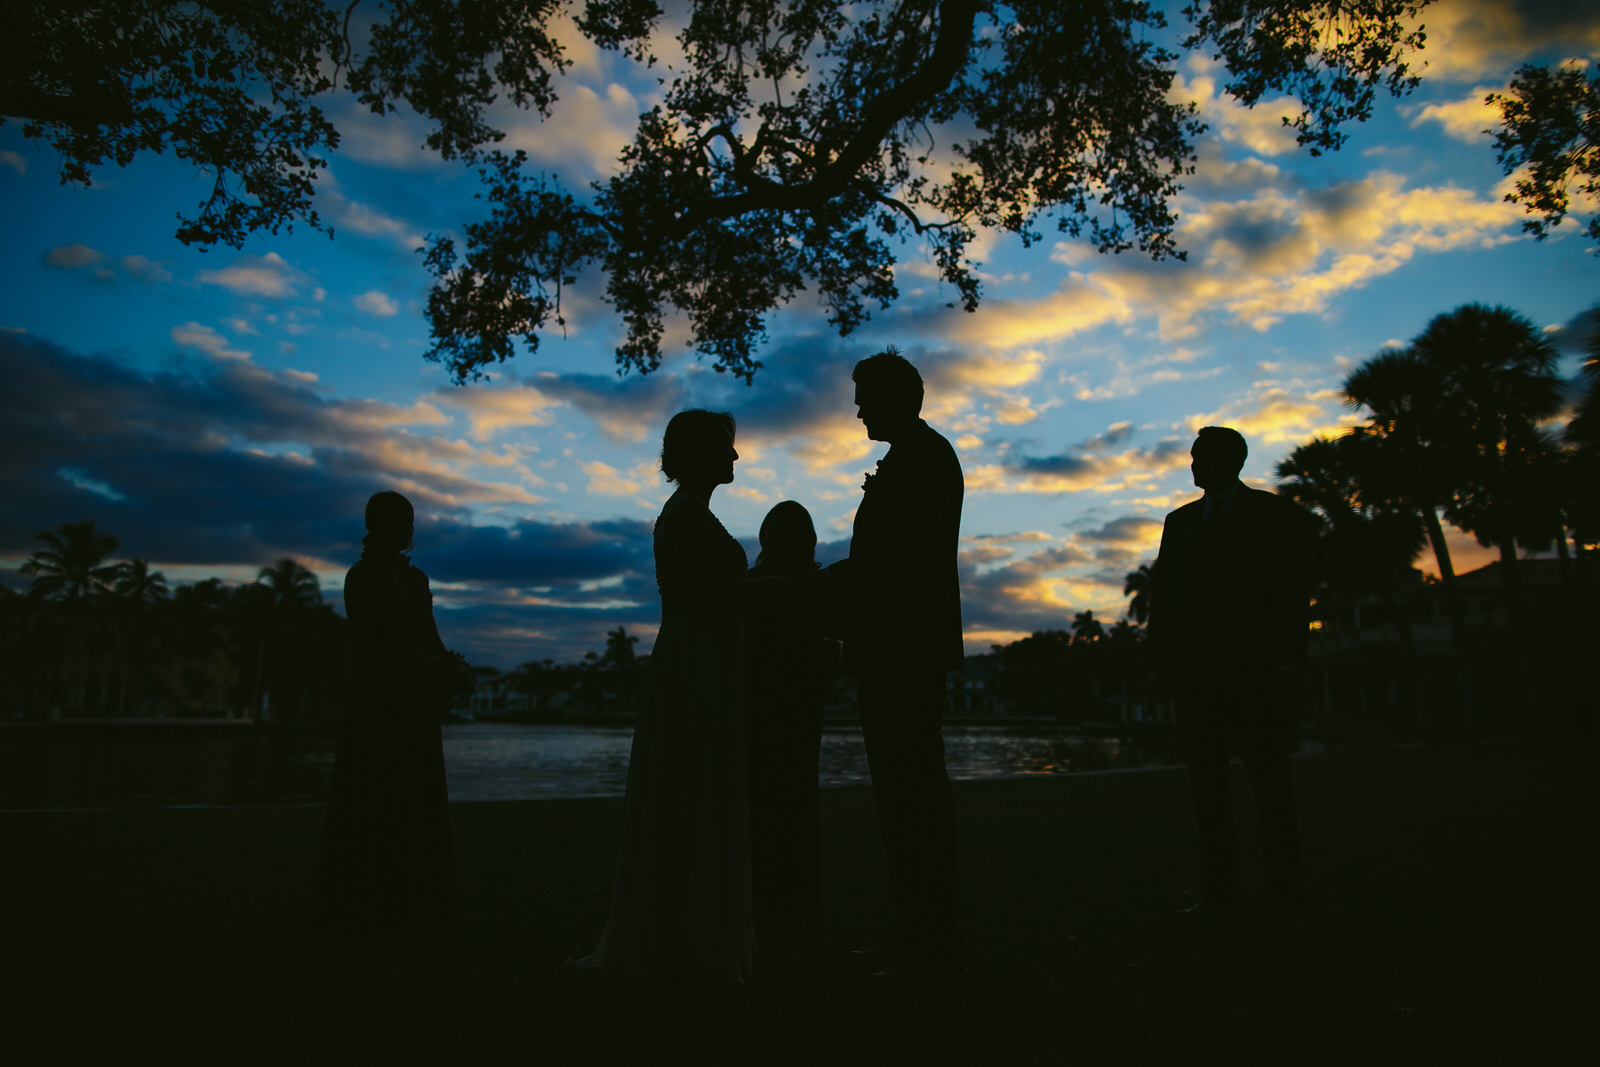 Gorgeous skies during a sunset ceremony in Downtown Fort Lauderdale. Blue skies and silhouettes of bride groom and wedding party can be seen.